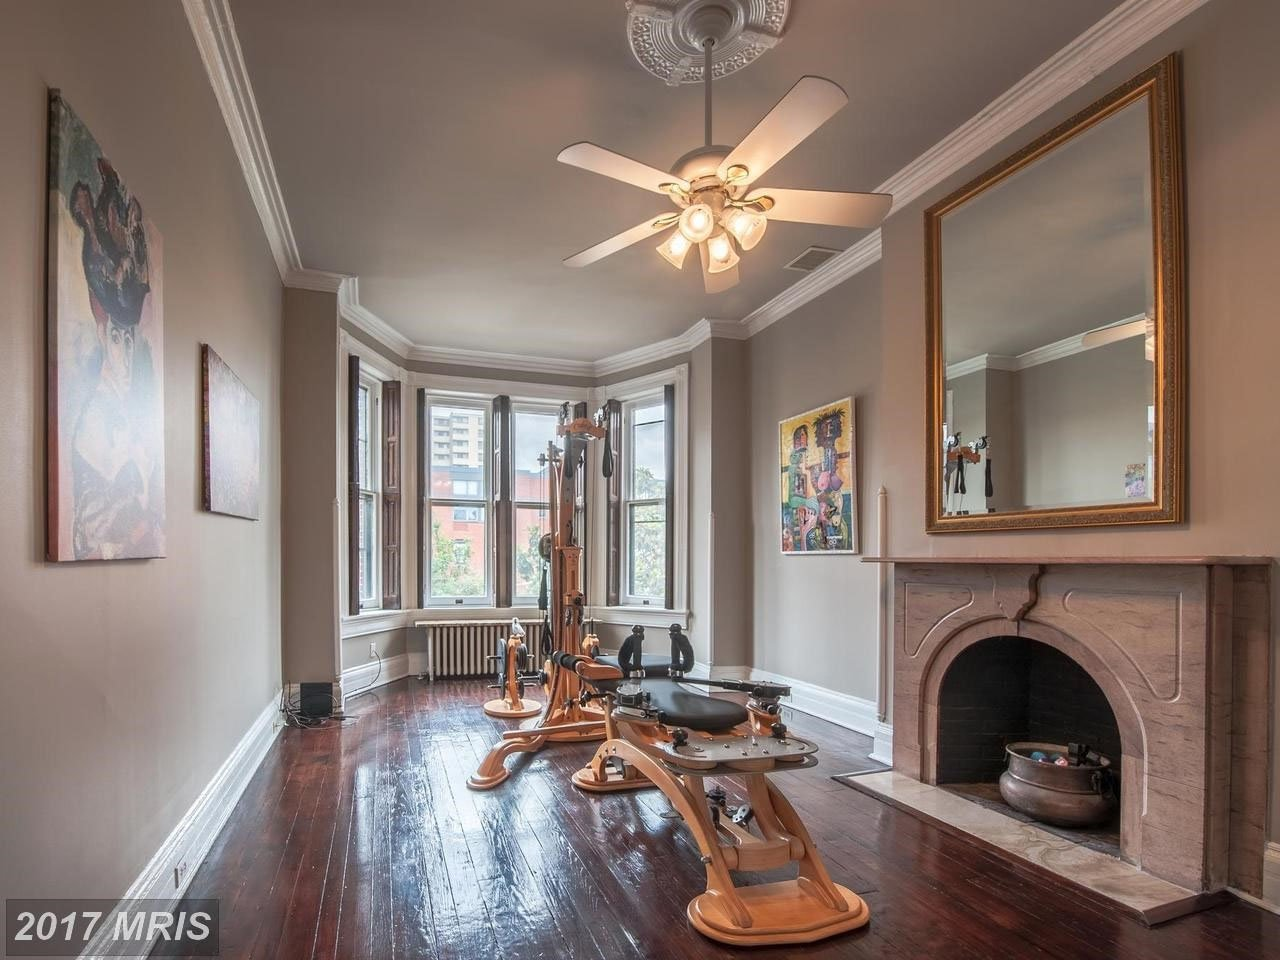 "A late 19th-century Victorian brick row house in Baltimore whose exterior was seen in the TV series ""House of Cards"" as the abode of power-hungry D.C. power couple Frank and Claire Underwood is going up for auction. (Courtesy MRIS)"